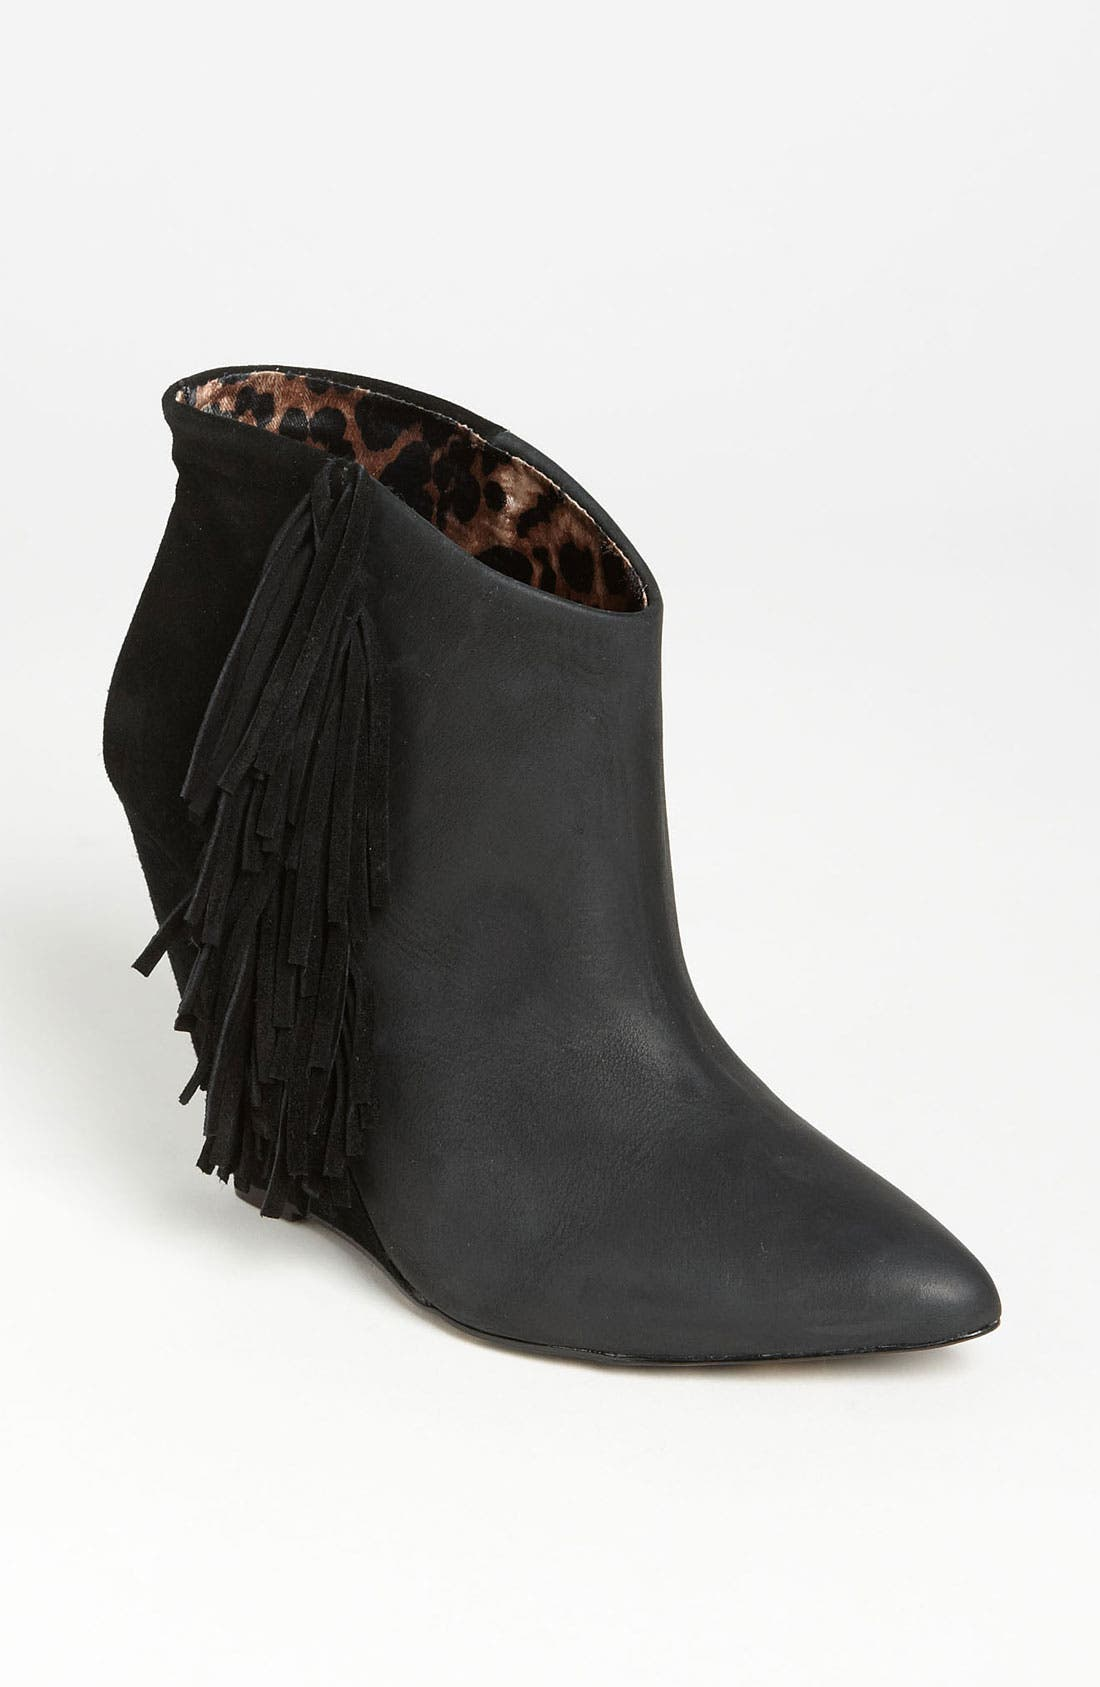 Alternate Image 1 Selected - Betsey Johnson 'Ziah' Boot